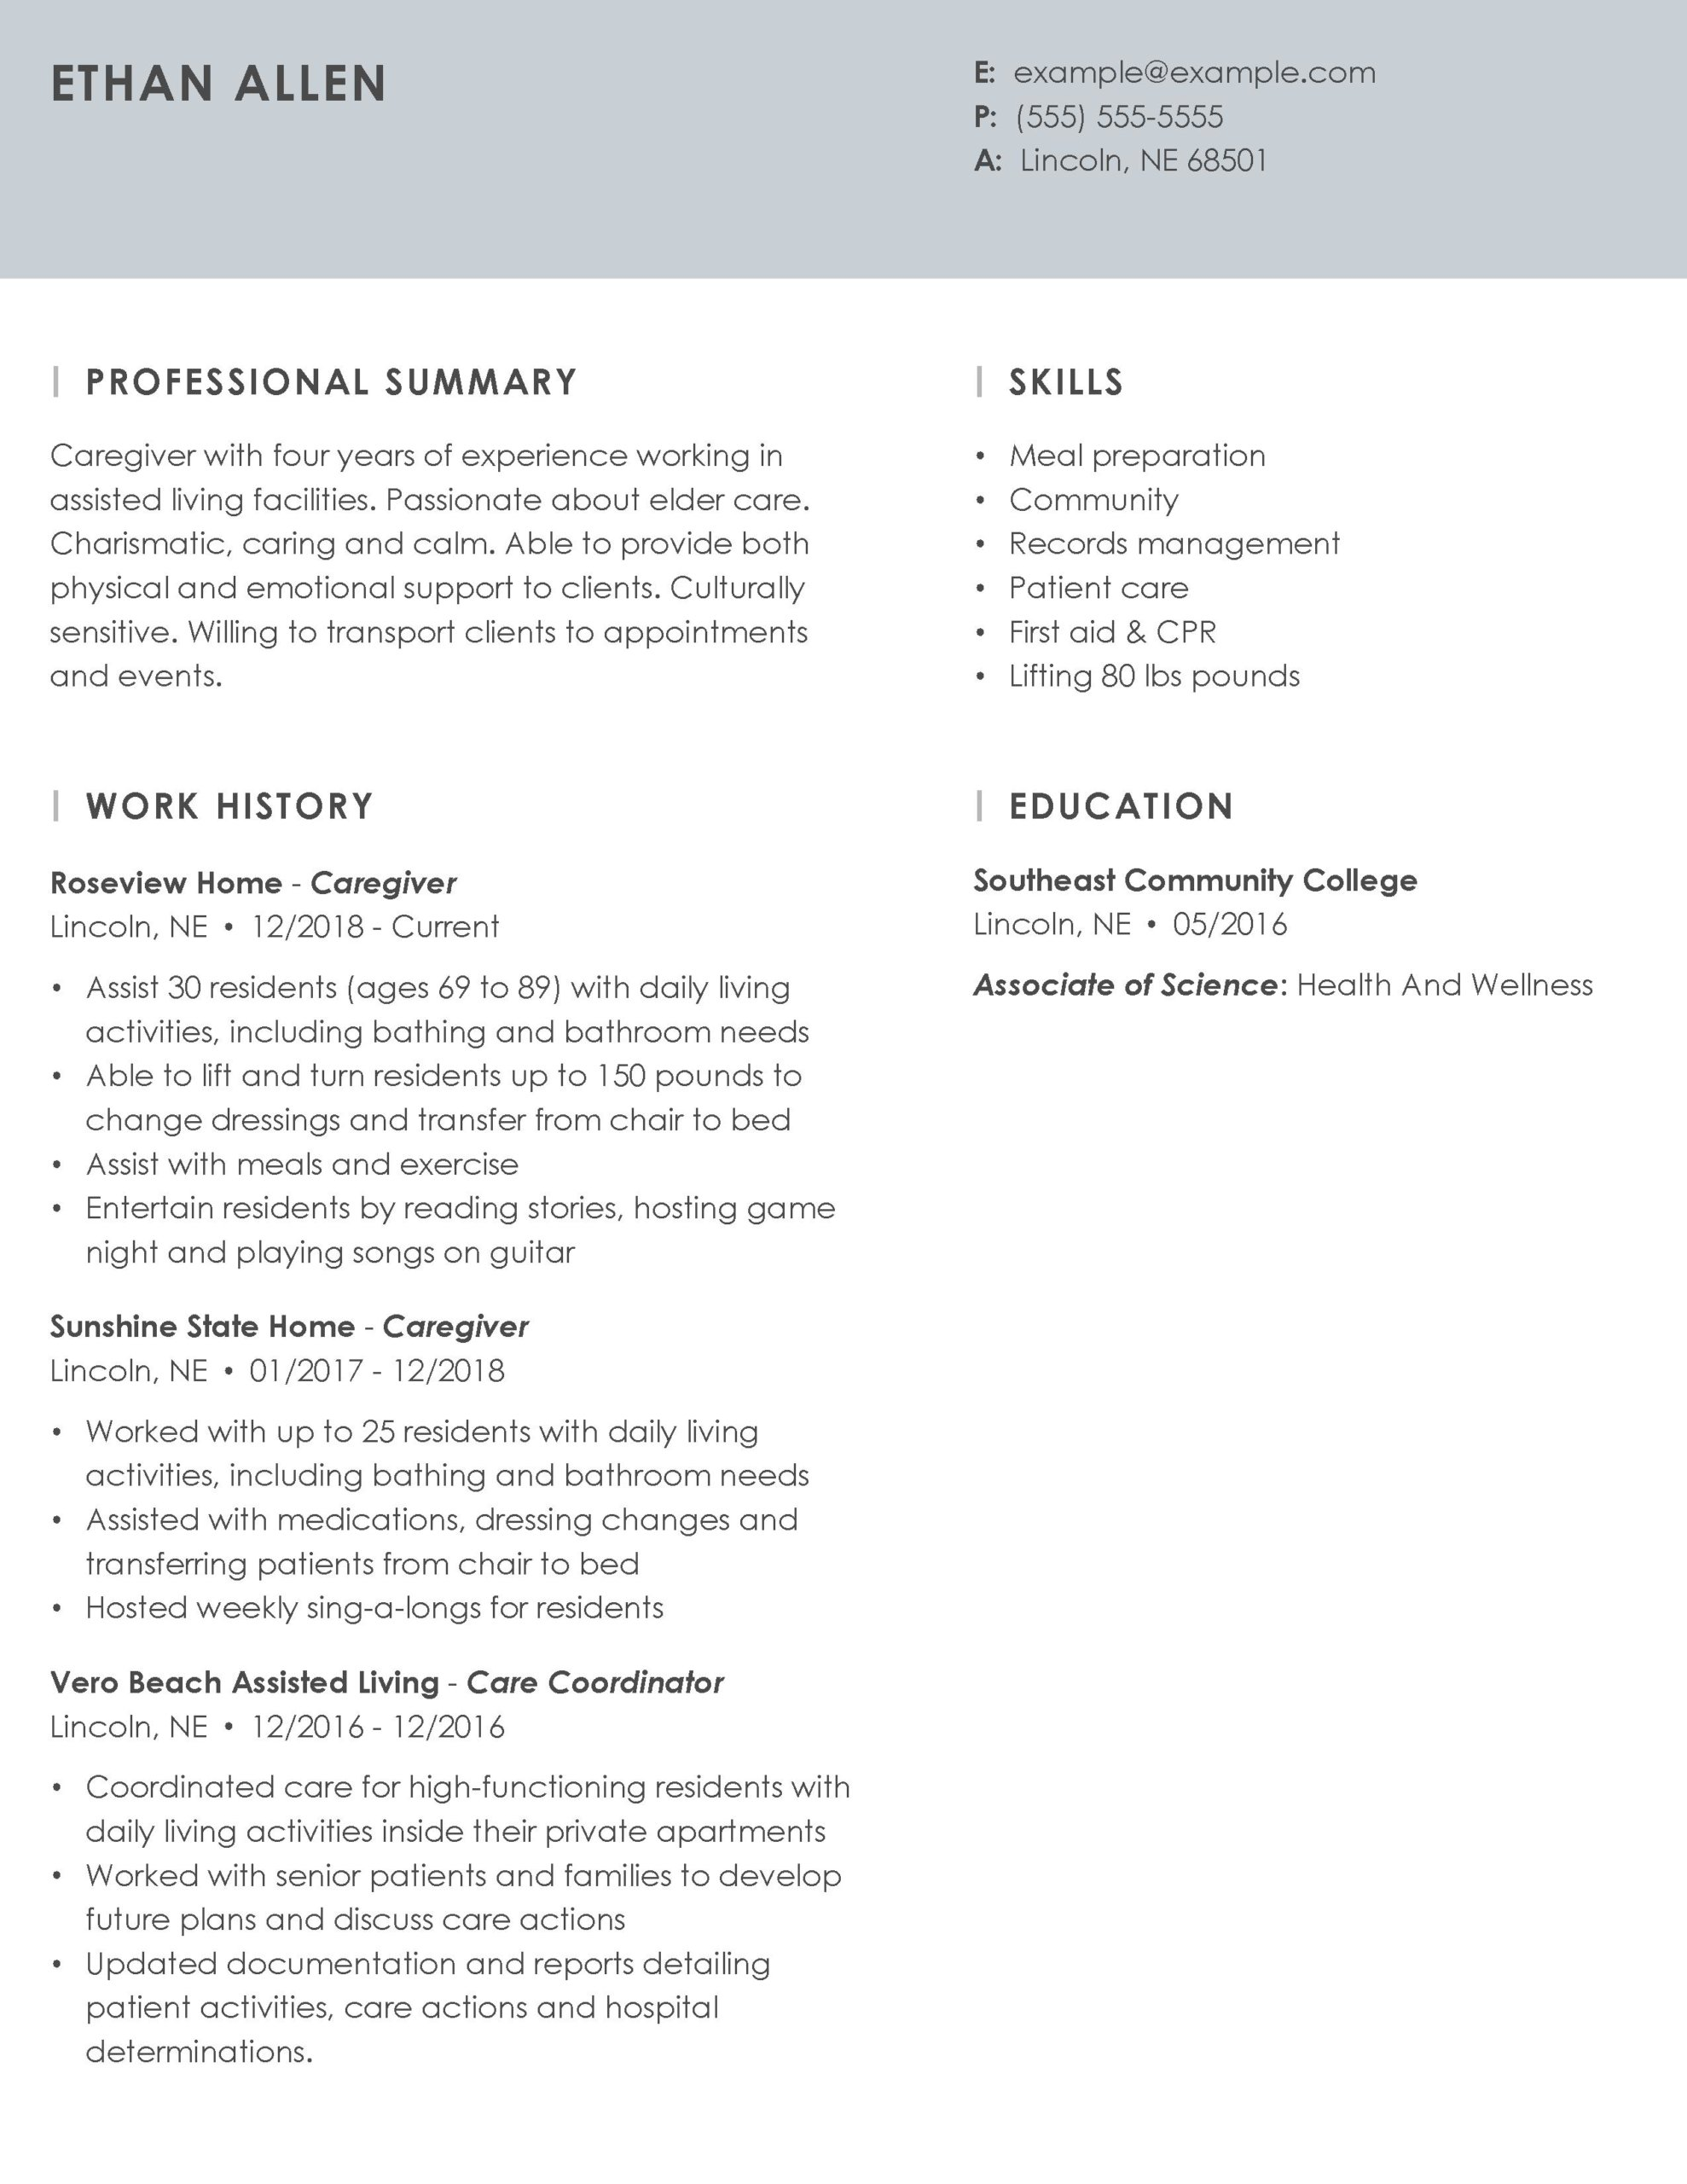 professional caregiver resume example tips myperfectresume sample for older job seekers Resume Sample Resume For Older Job Seekers